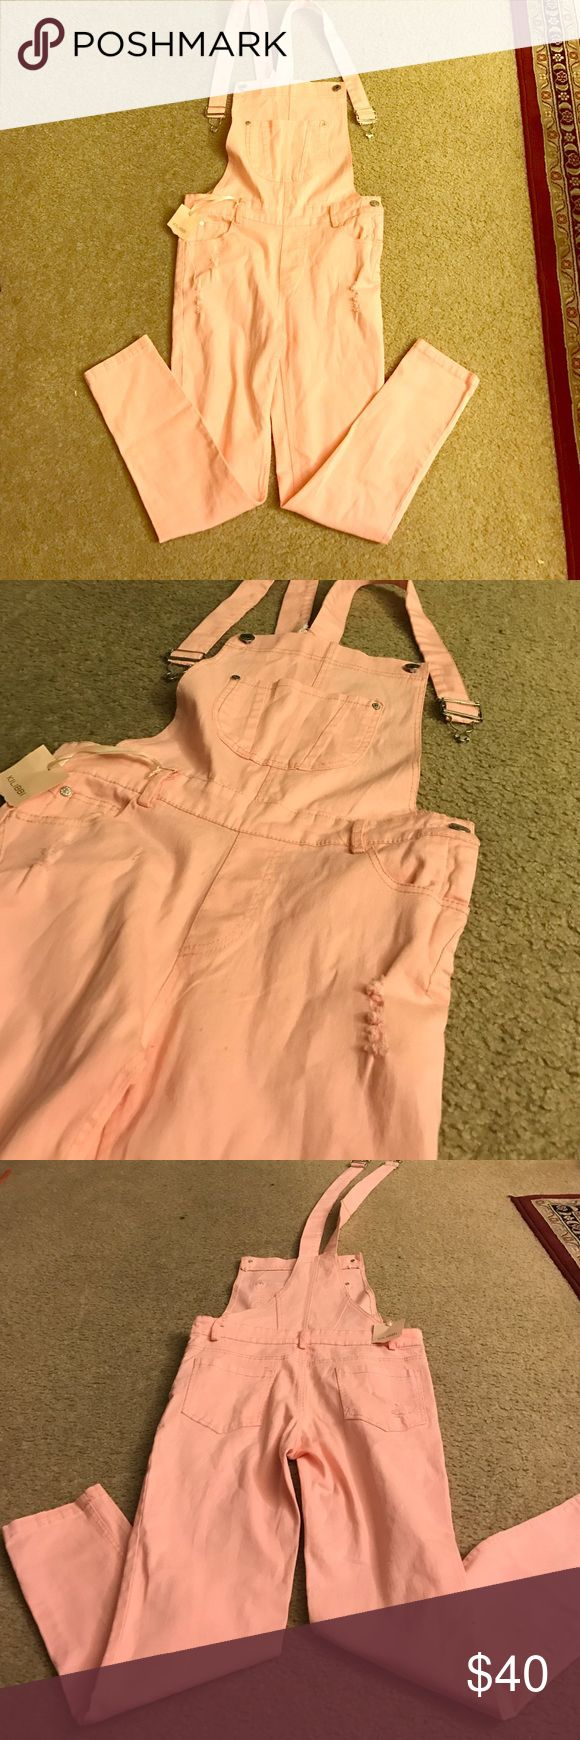 Cute Pink jean overalls 💞 Super adorable baby pink jean overalls. Bey comfortable. Never worn. Good fit Kilibbi Jeans Overalls